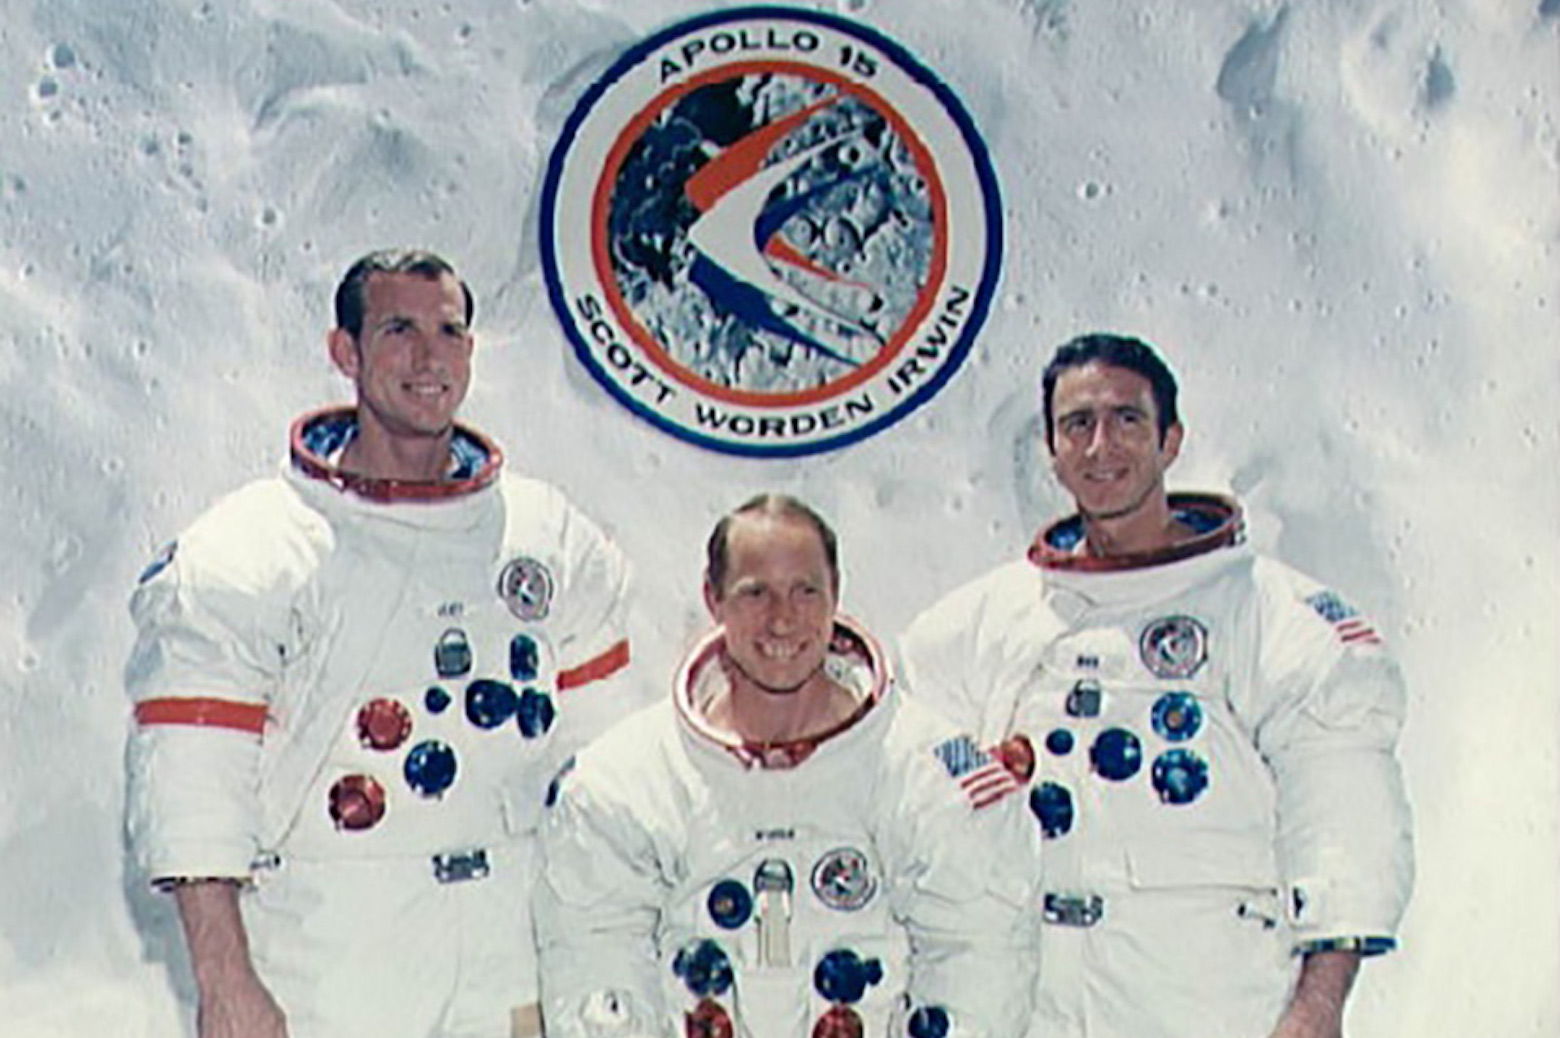 Portrait of the Apollo 15 crew